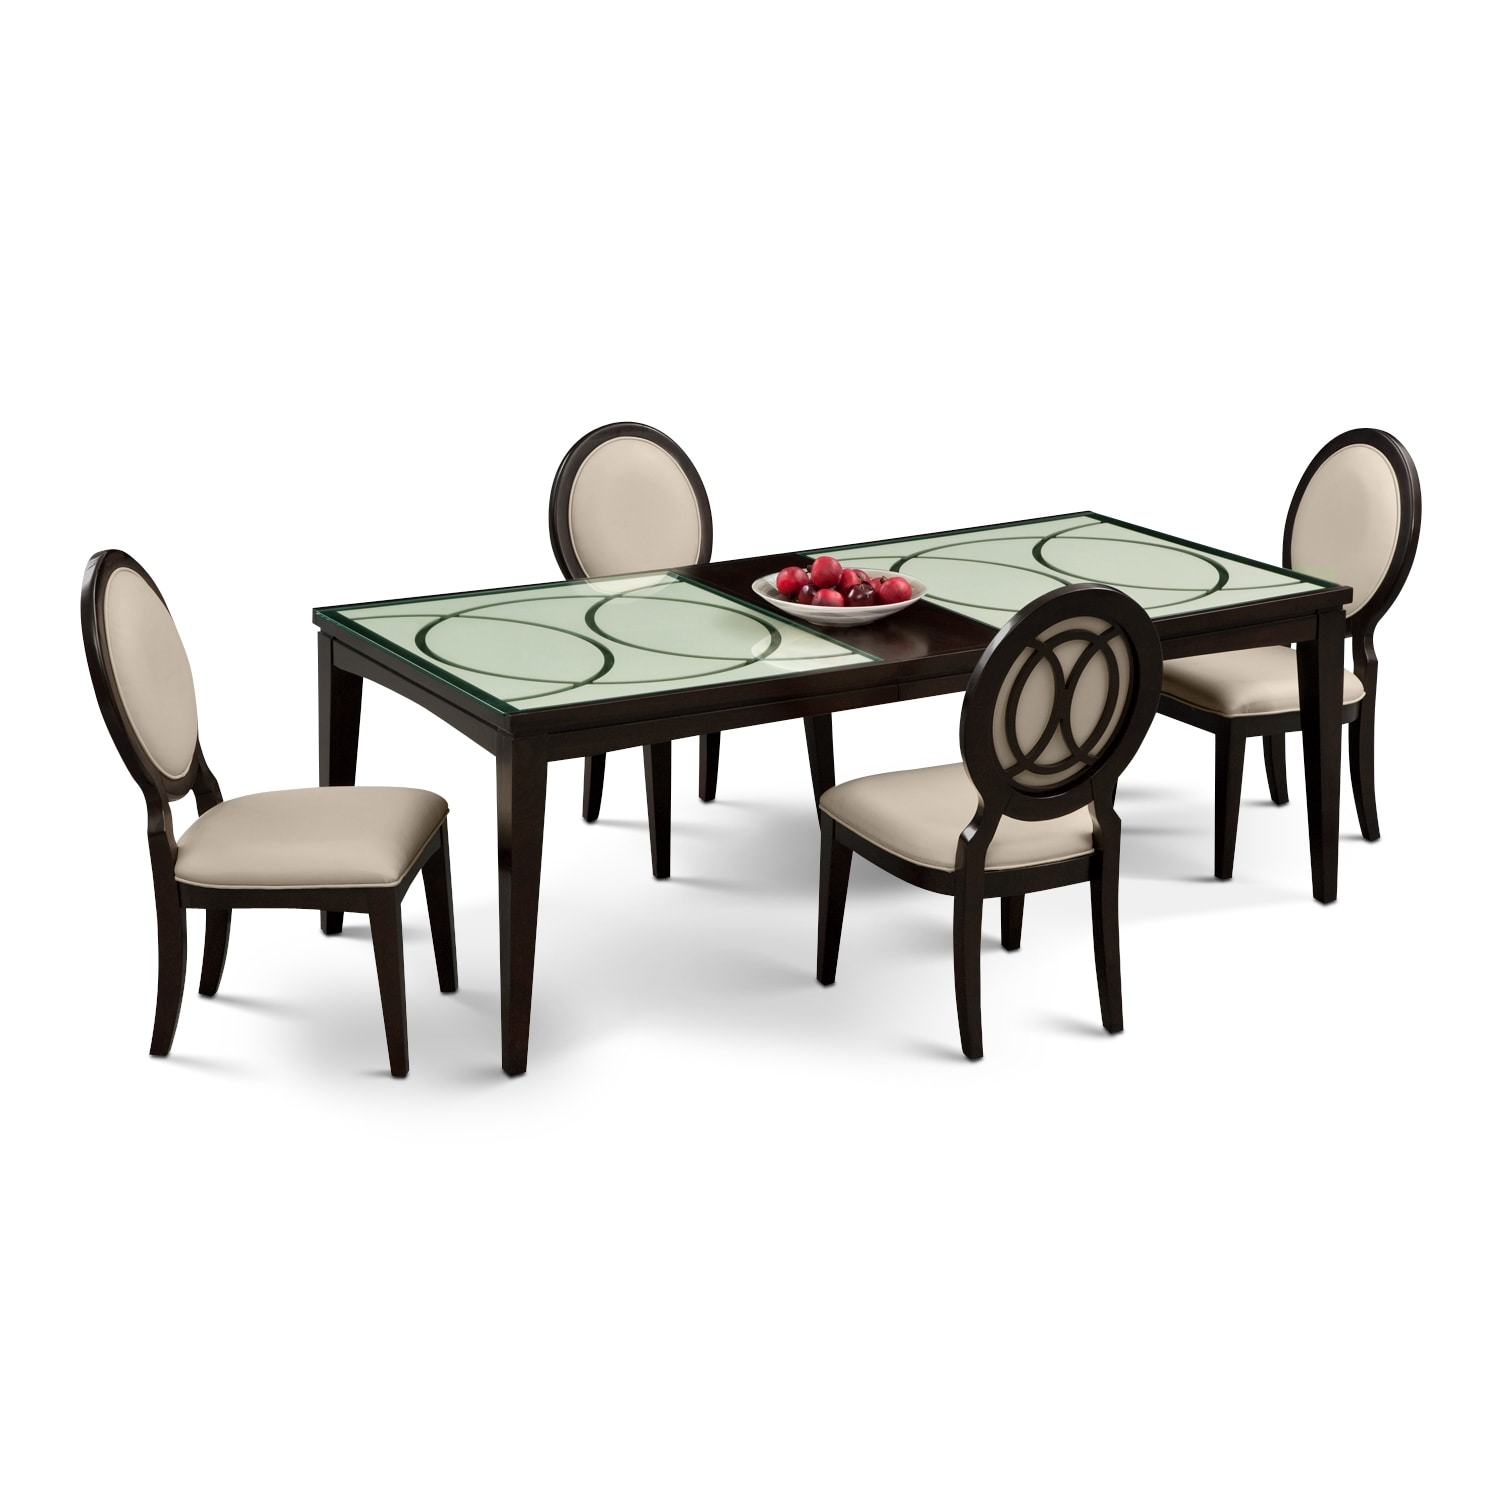 Dining Room Furniture - Cosmo Dining Table and 4 Dining Chairs